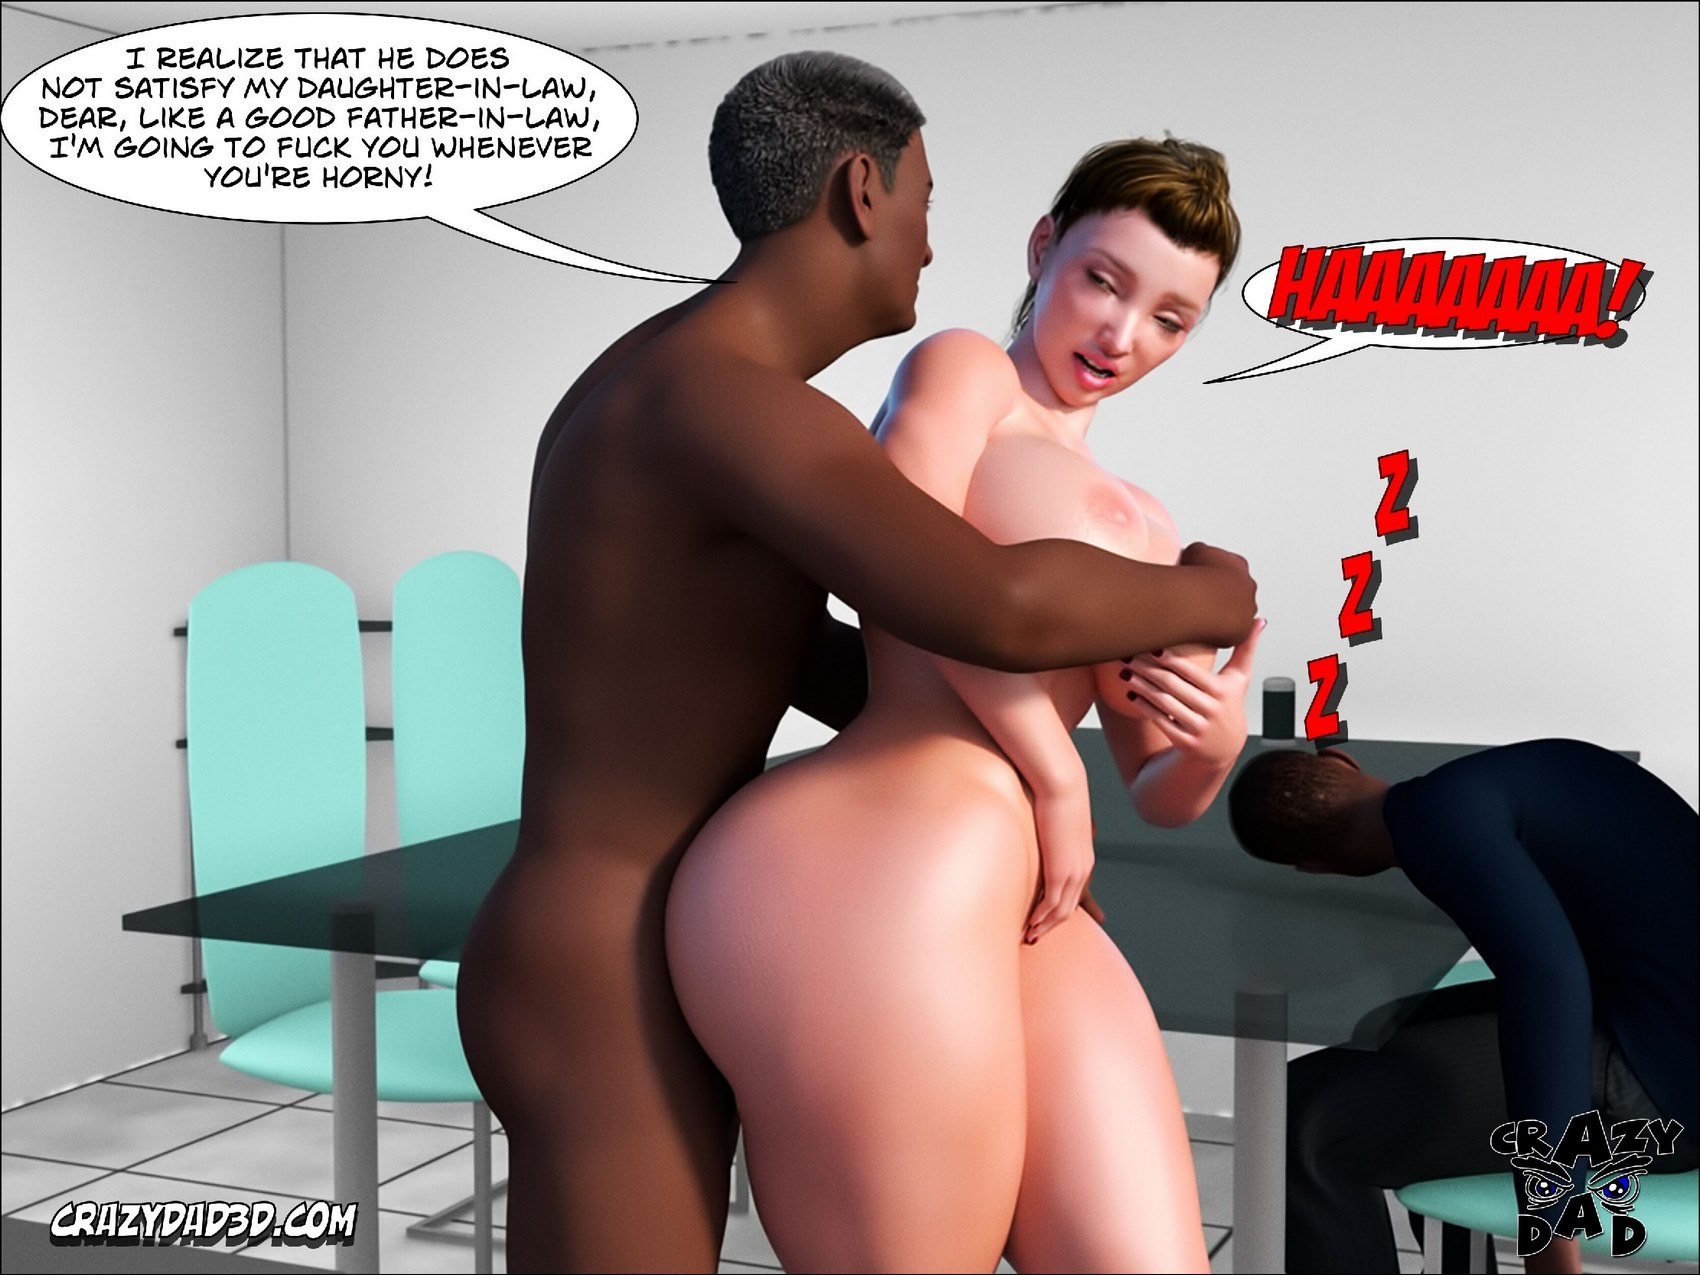 Father In Law At Home 4- CrazyDad3D